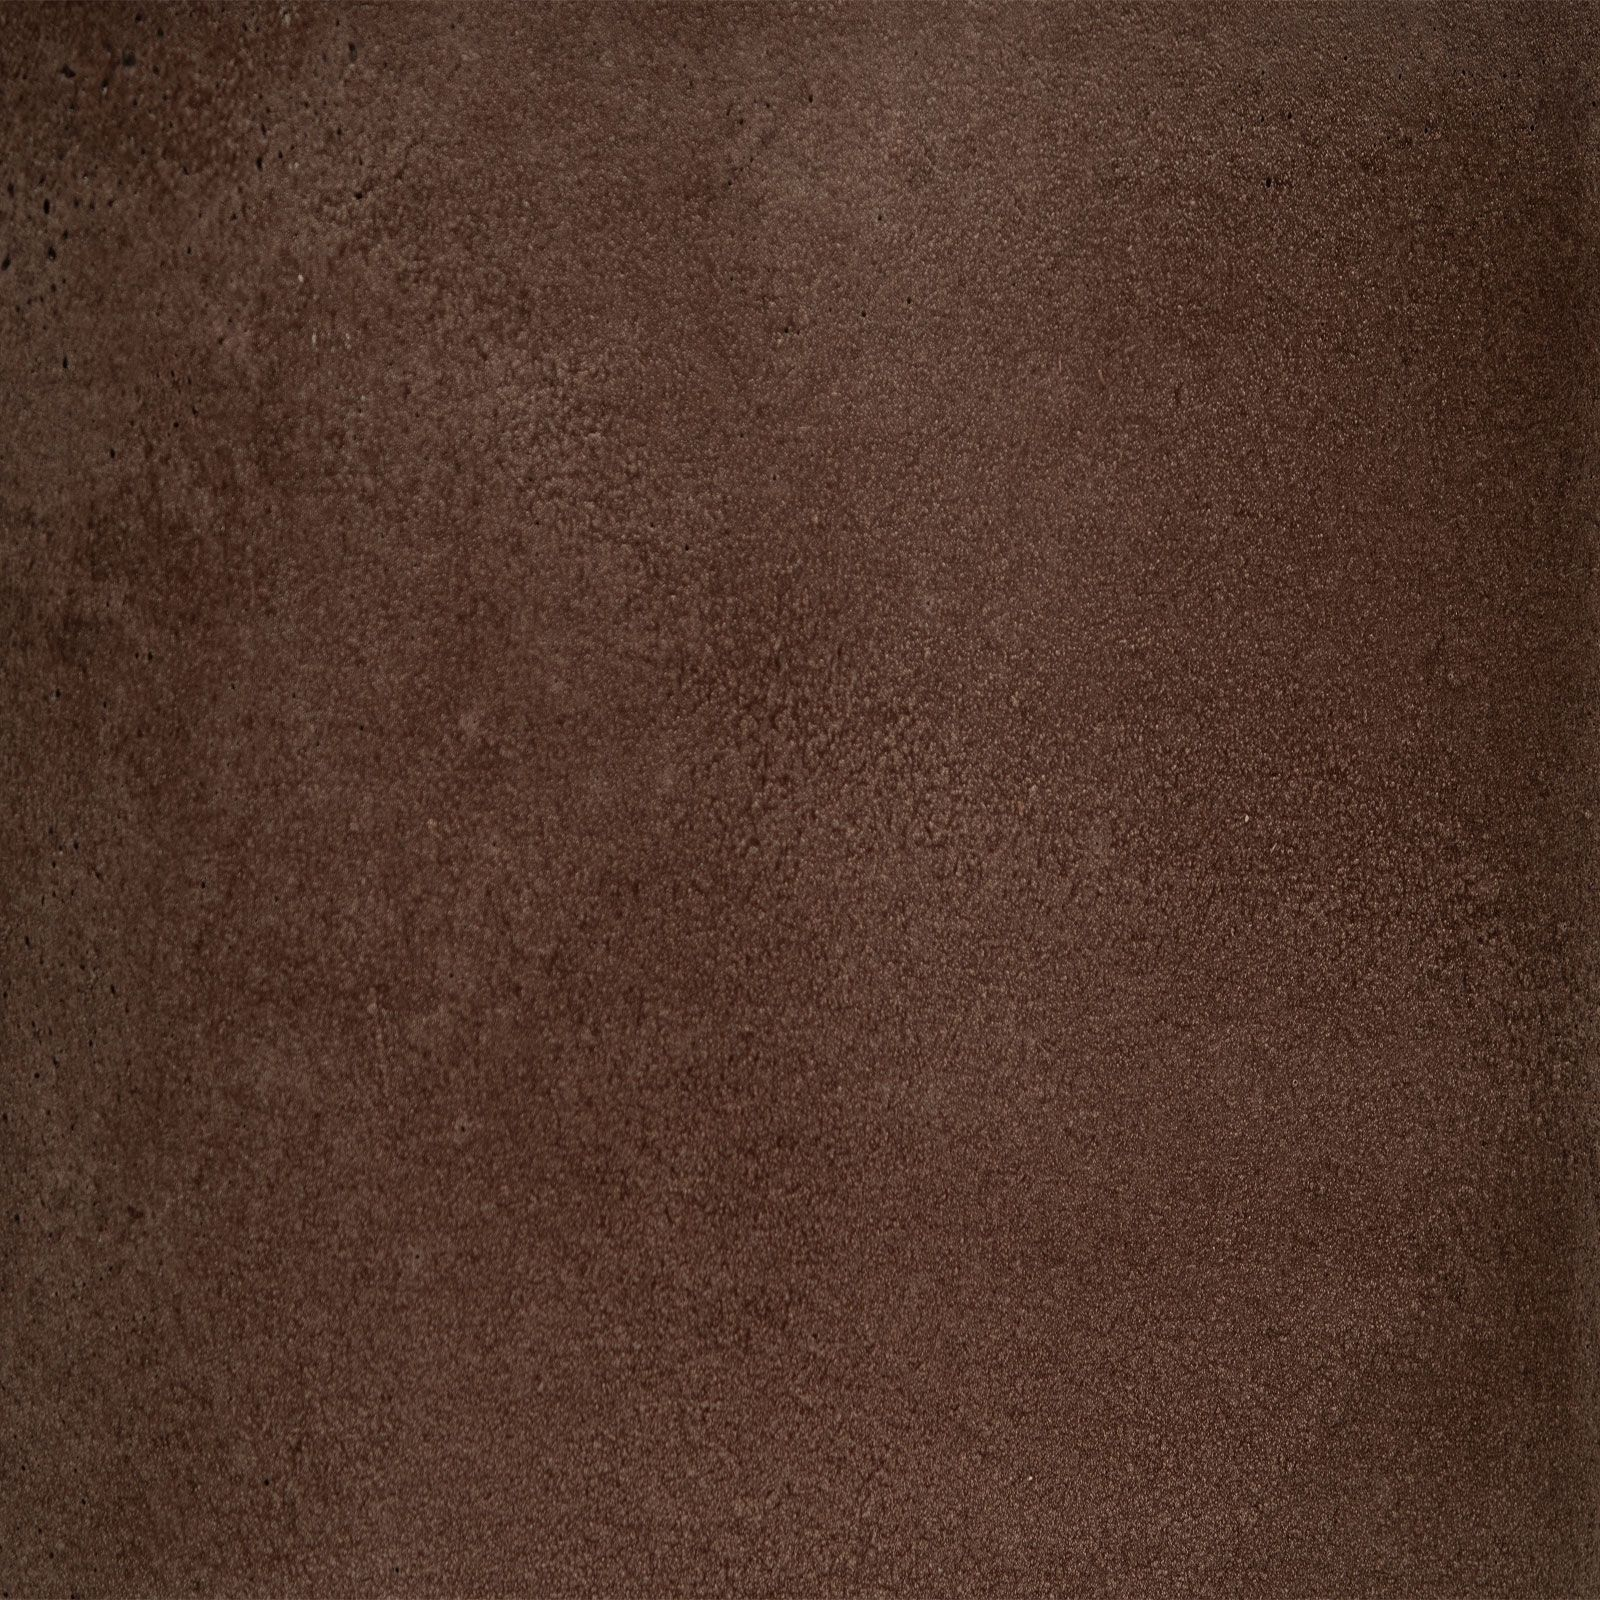 Tinted Concrete Sealer Size 5 Gallons Color Auburn Finish High